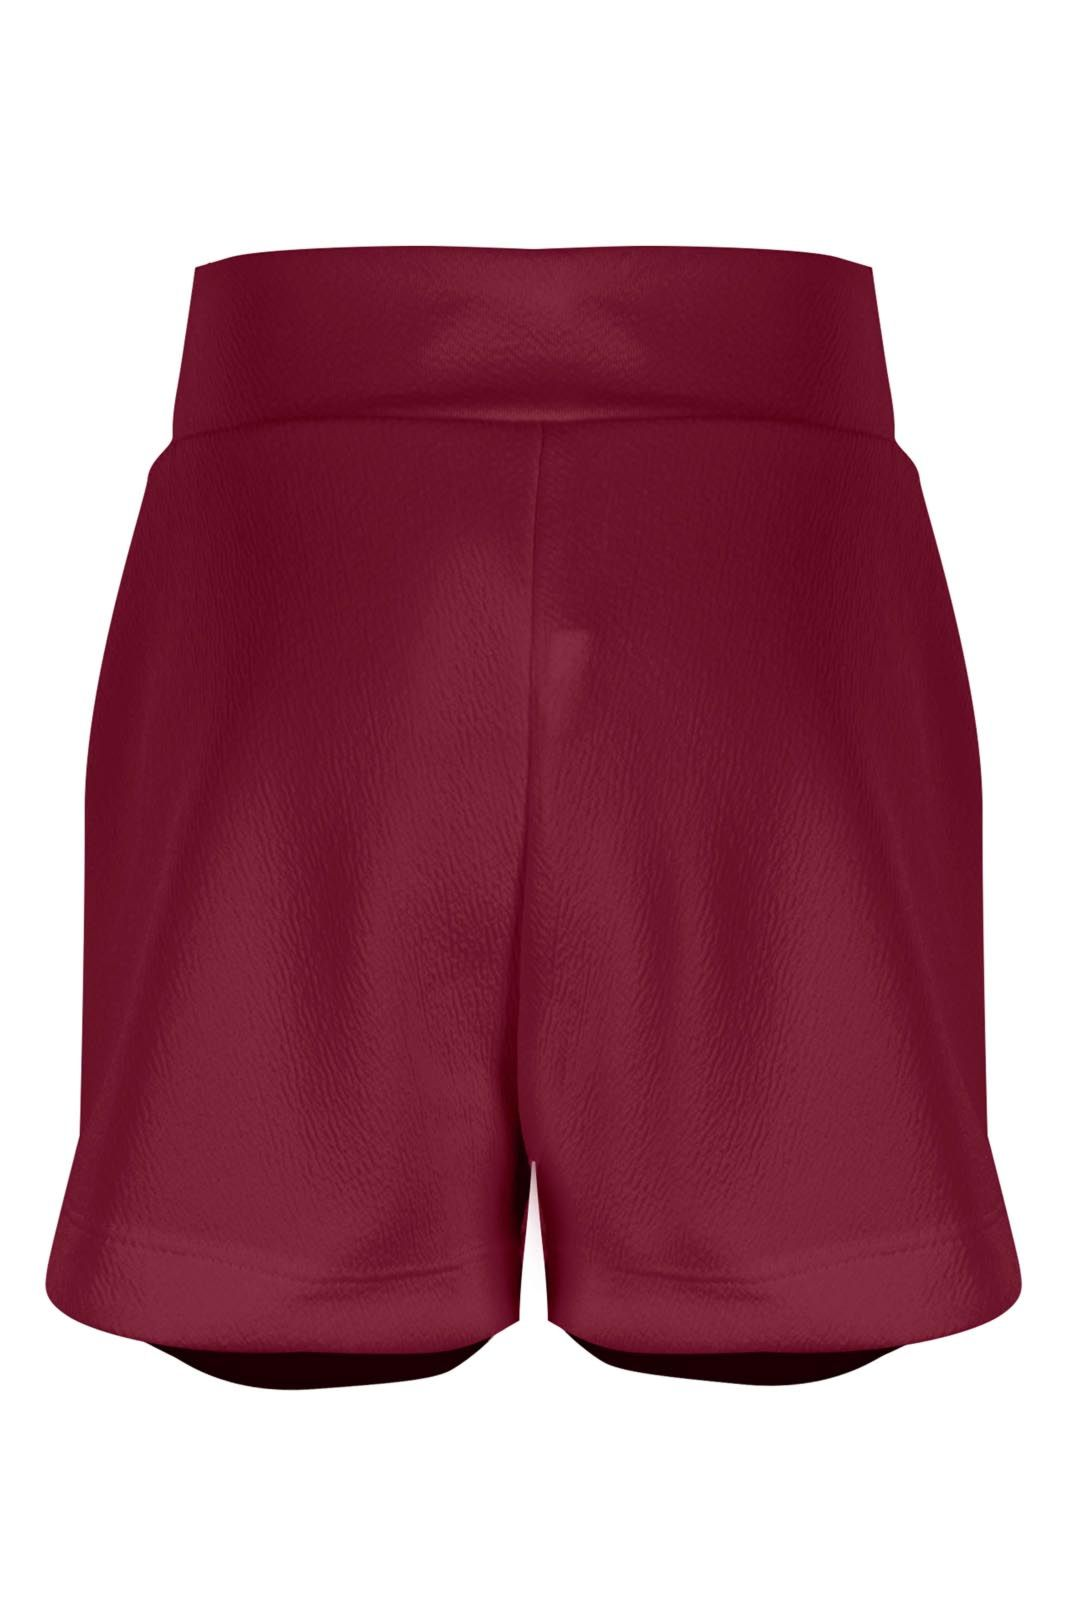 Short Outlet Dri Infantil Crepe Curto Clochard Vinho